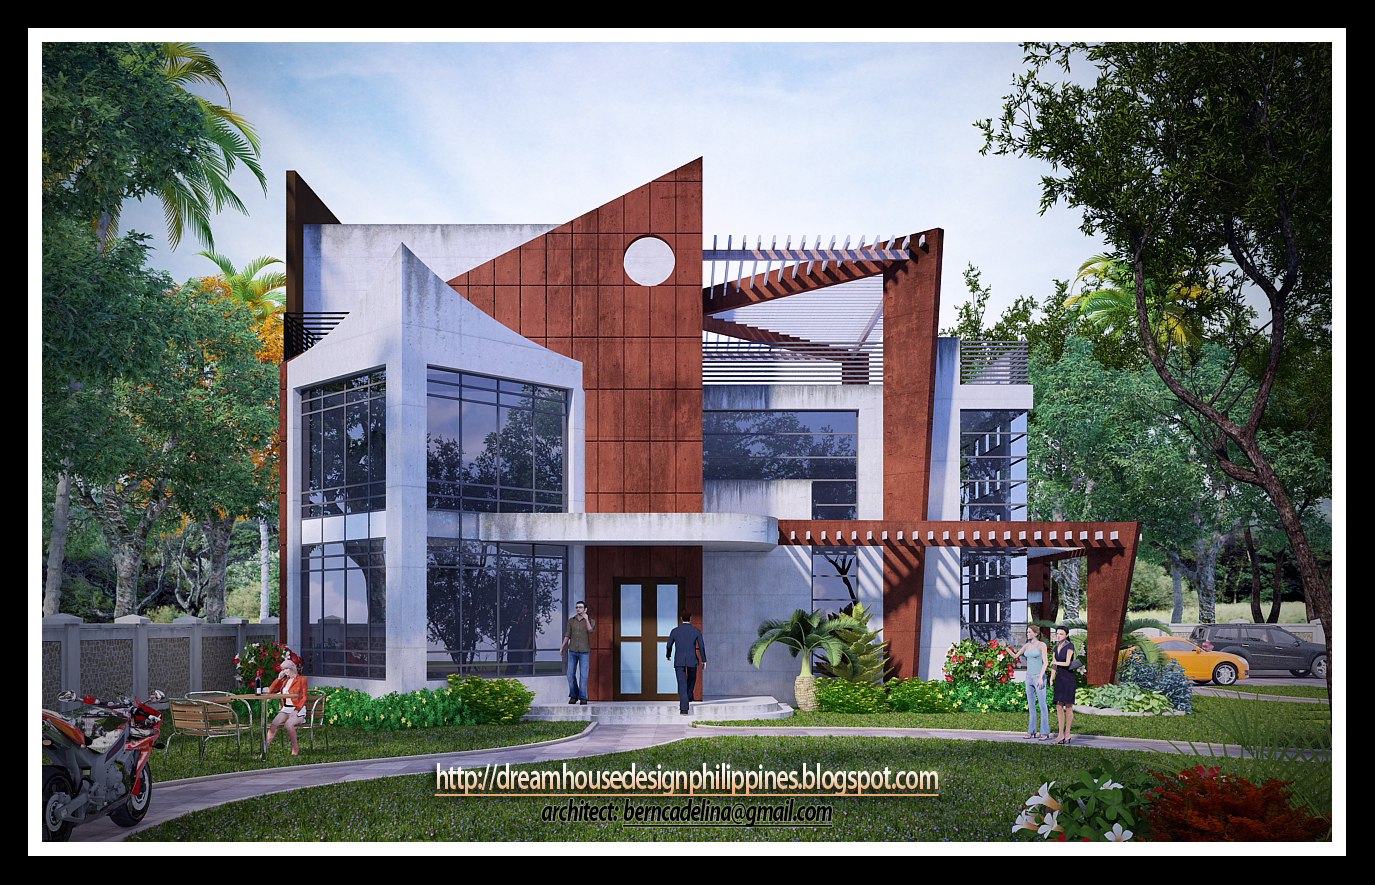 House designs philippines architect bill house plans for Modern architecture house design philippines